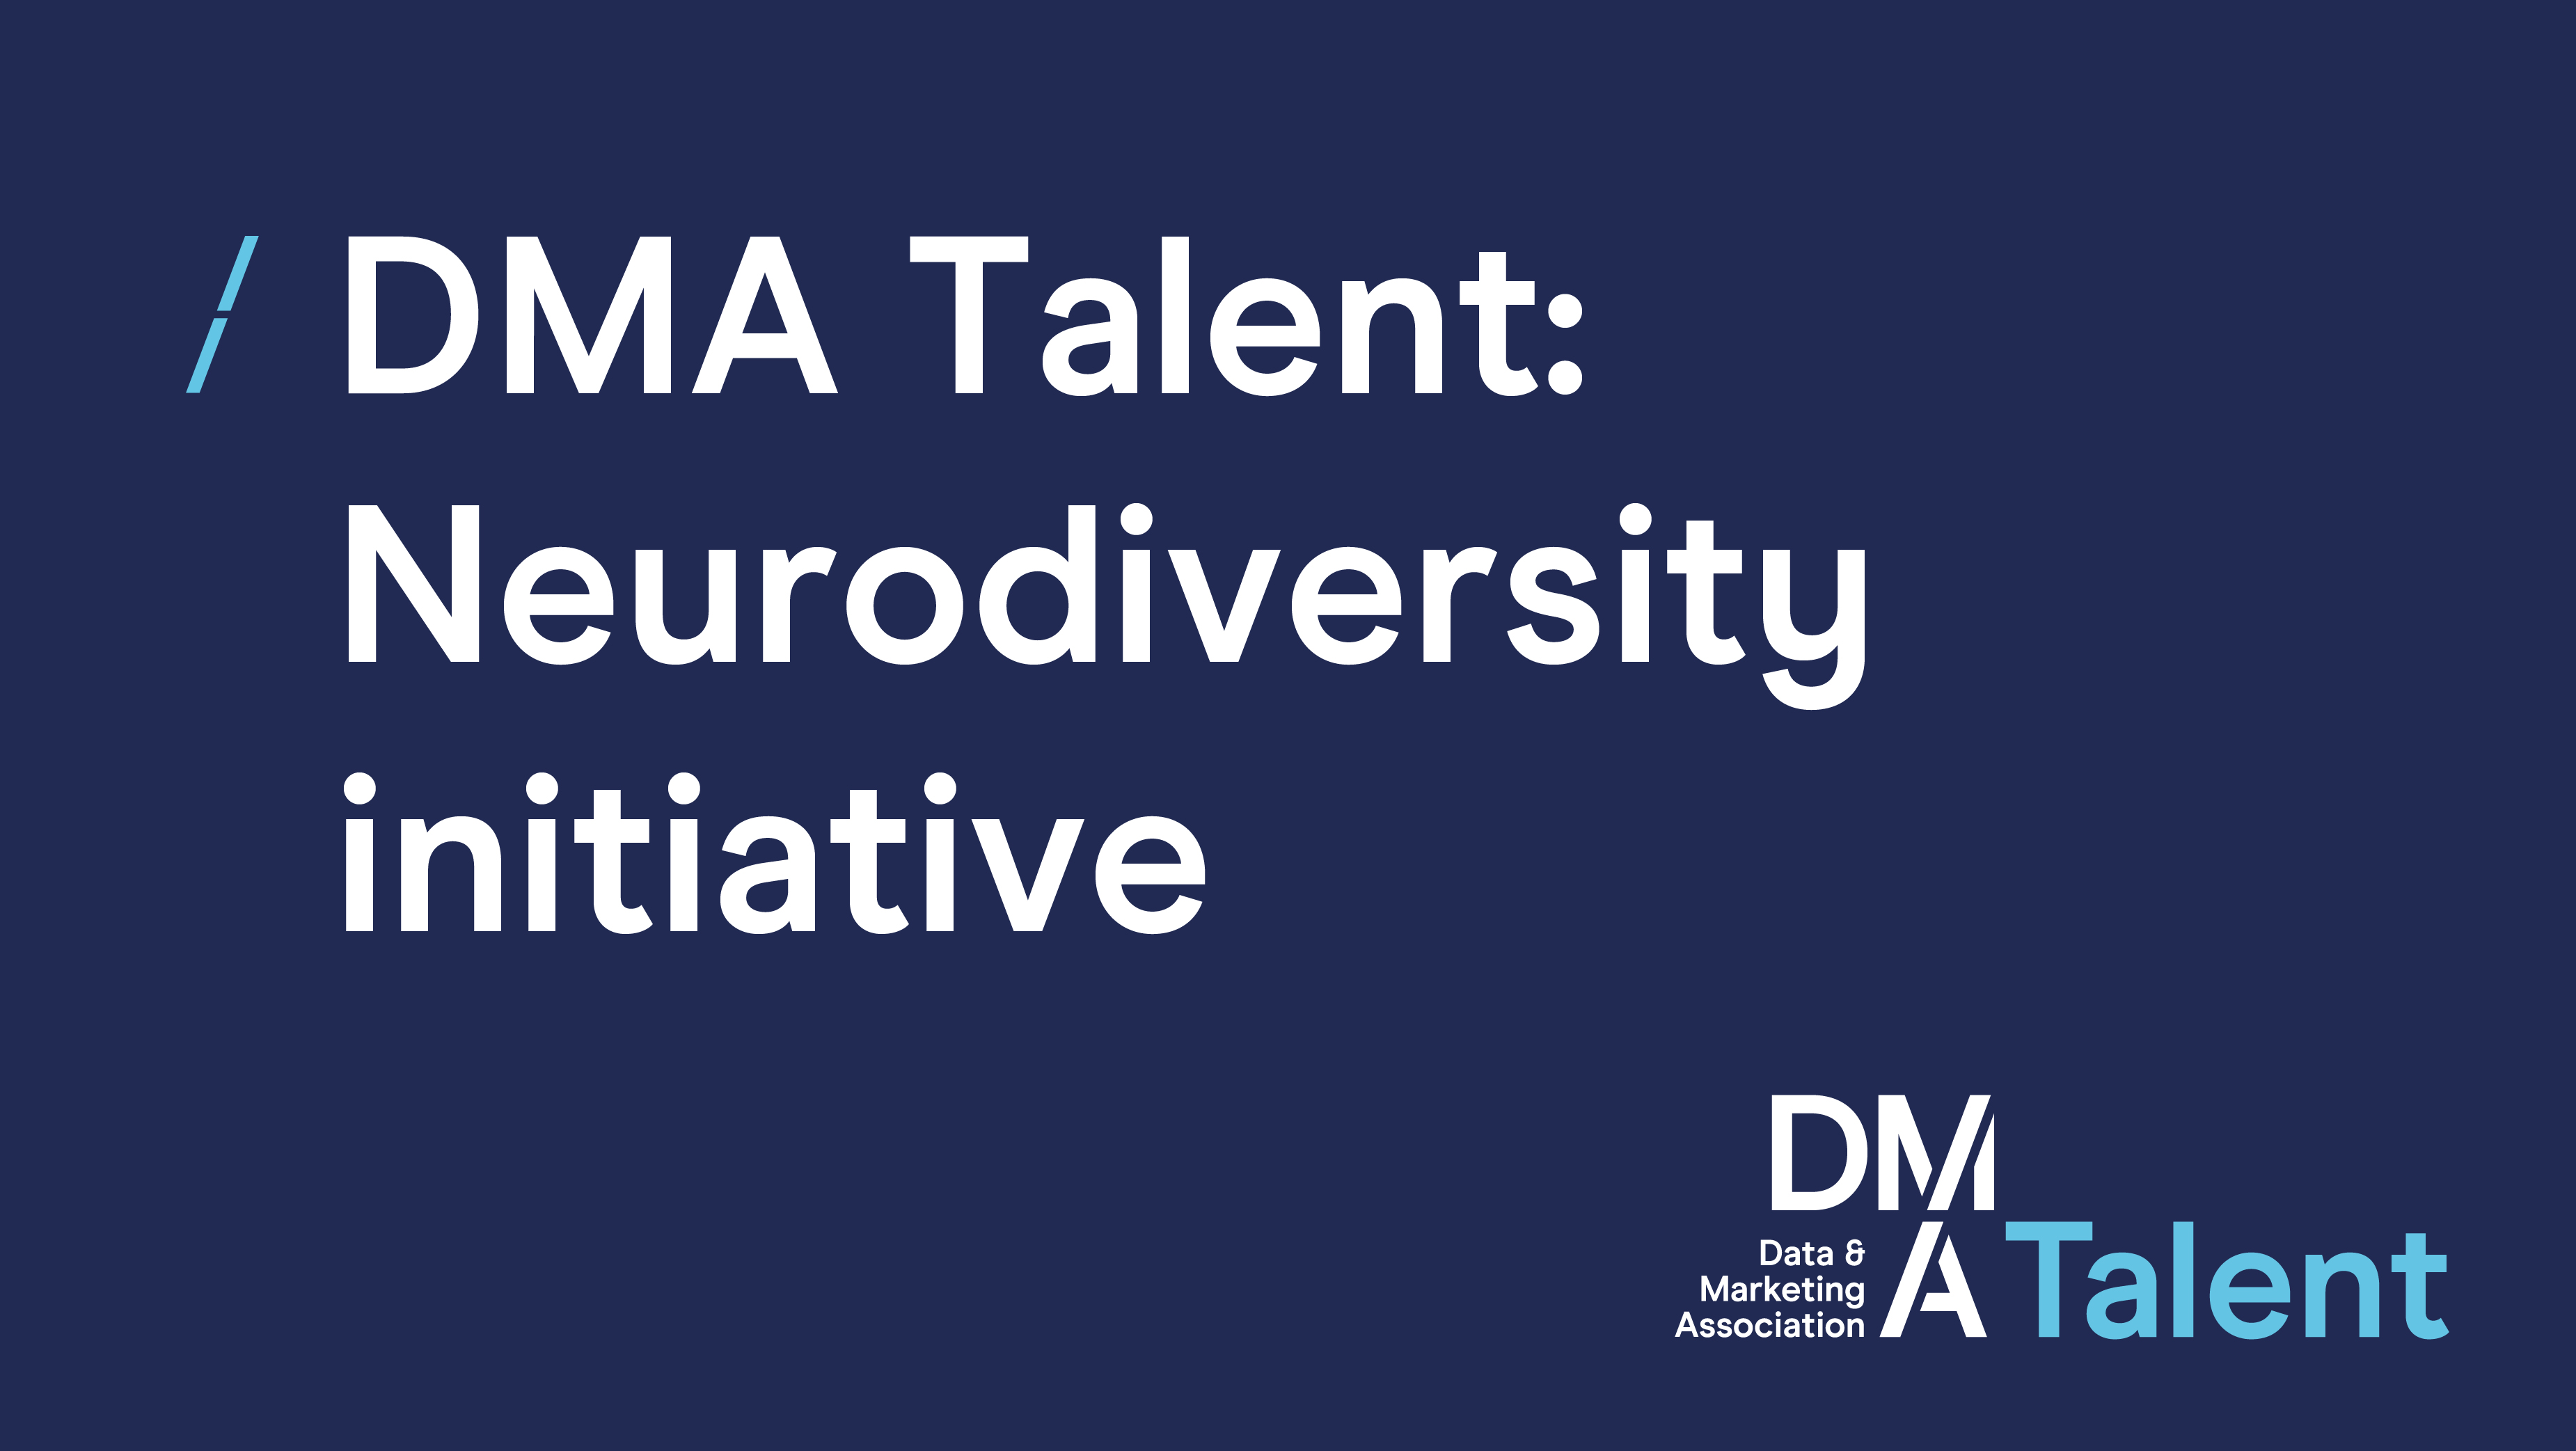 DMA Talent- Neurodiversity.jpg